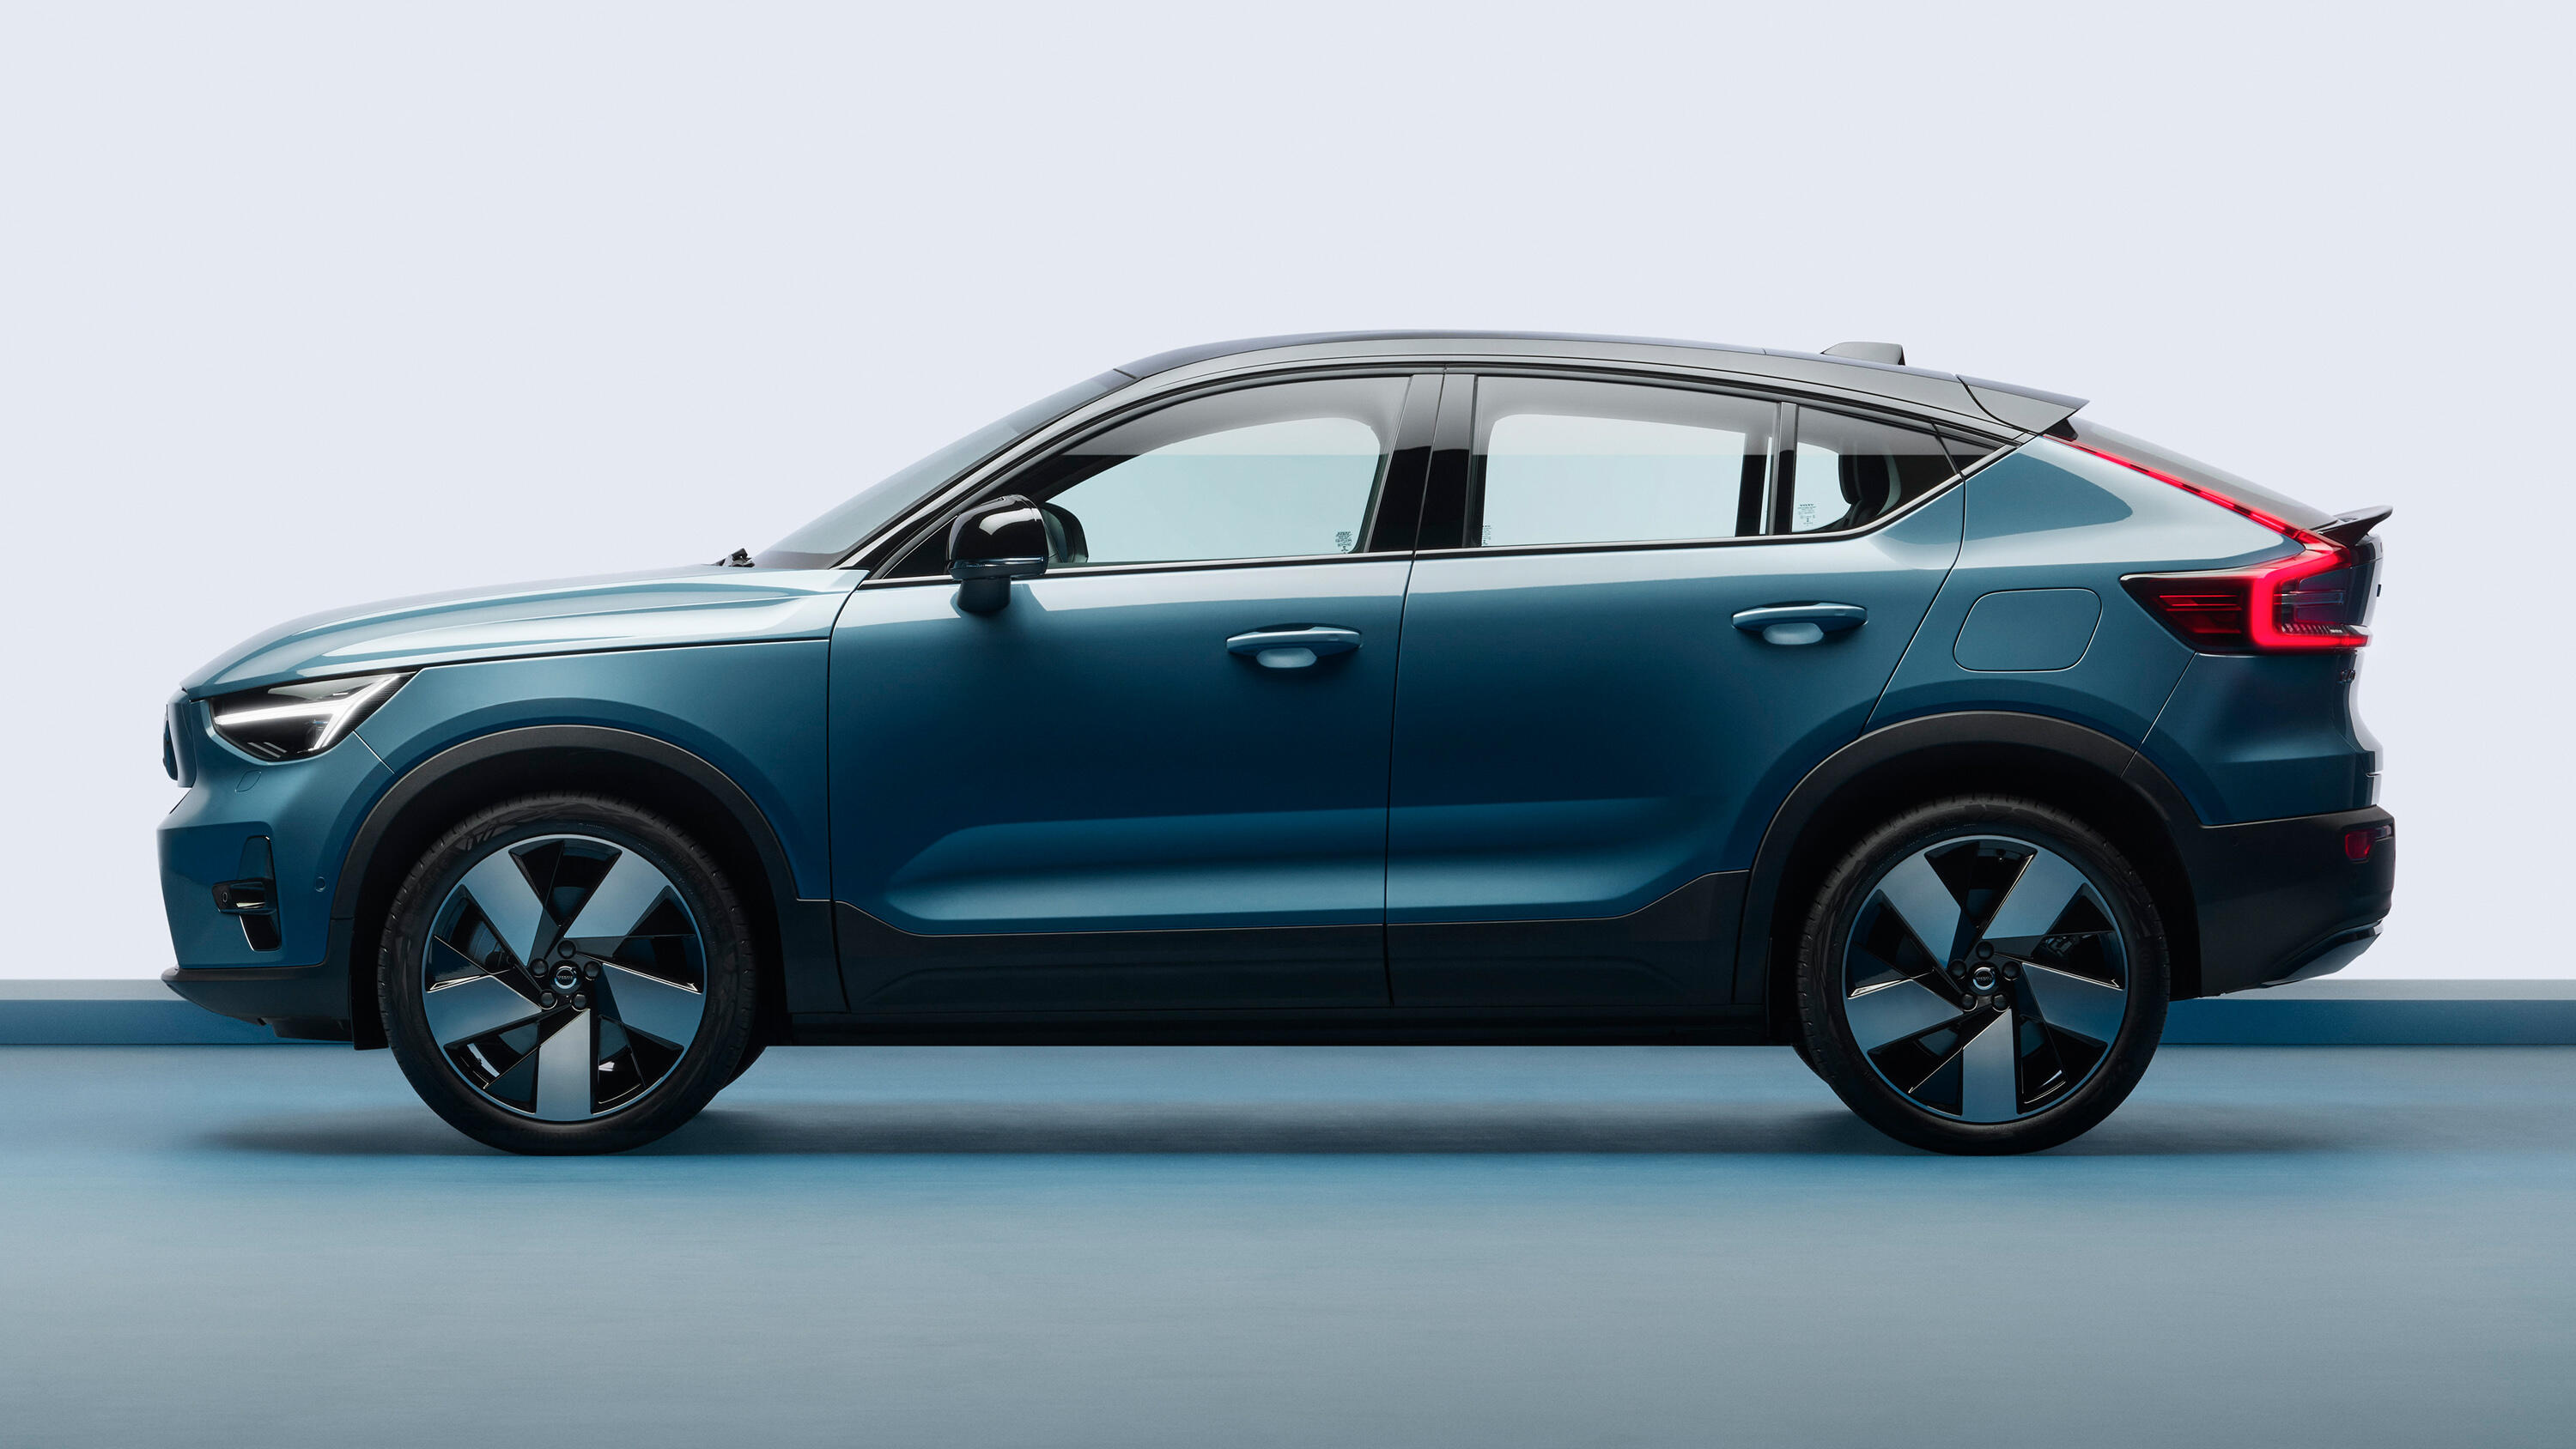 Video: Volvo's electric C40 Recharge has the shape to match its speed